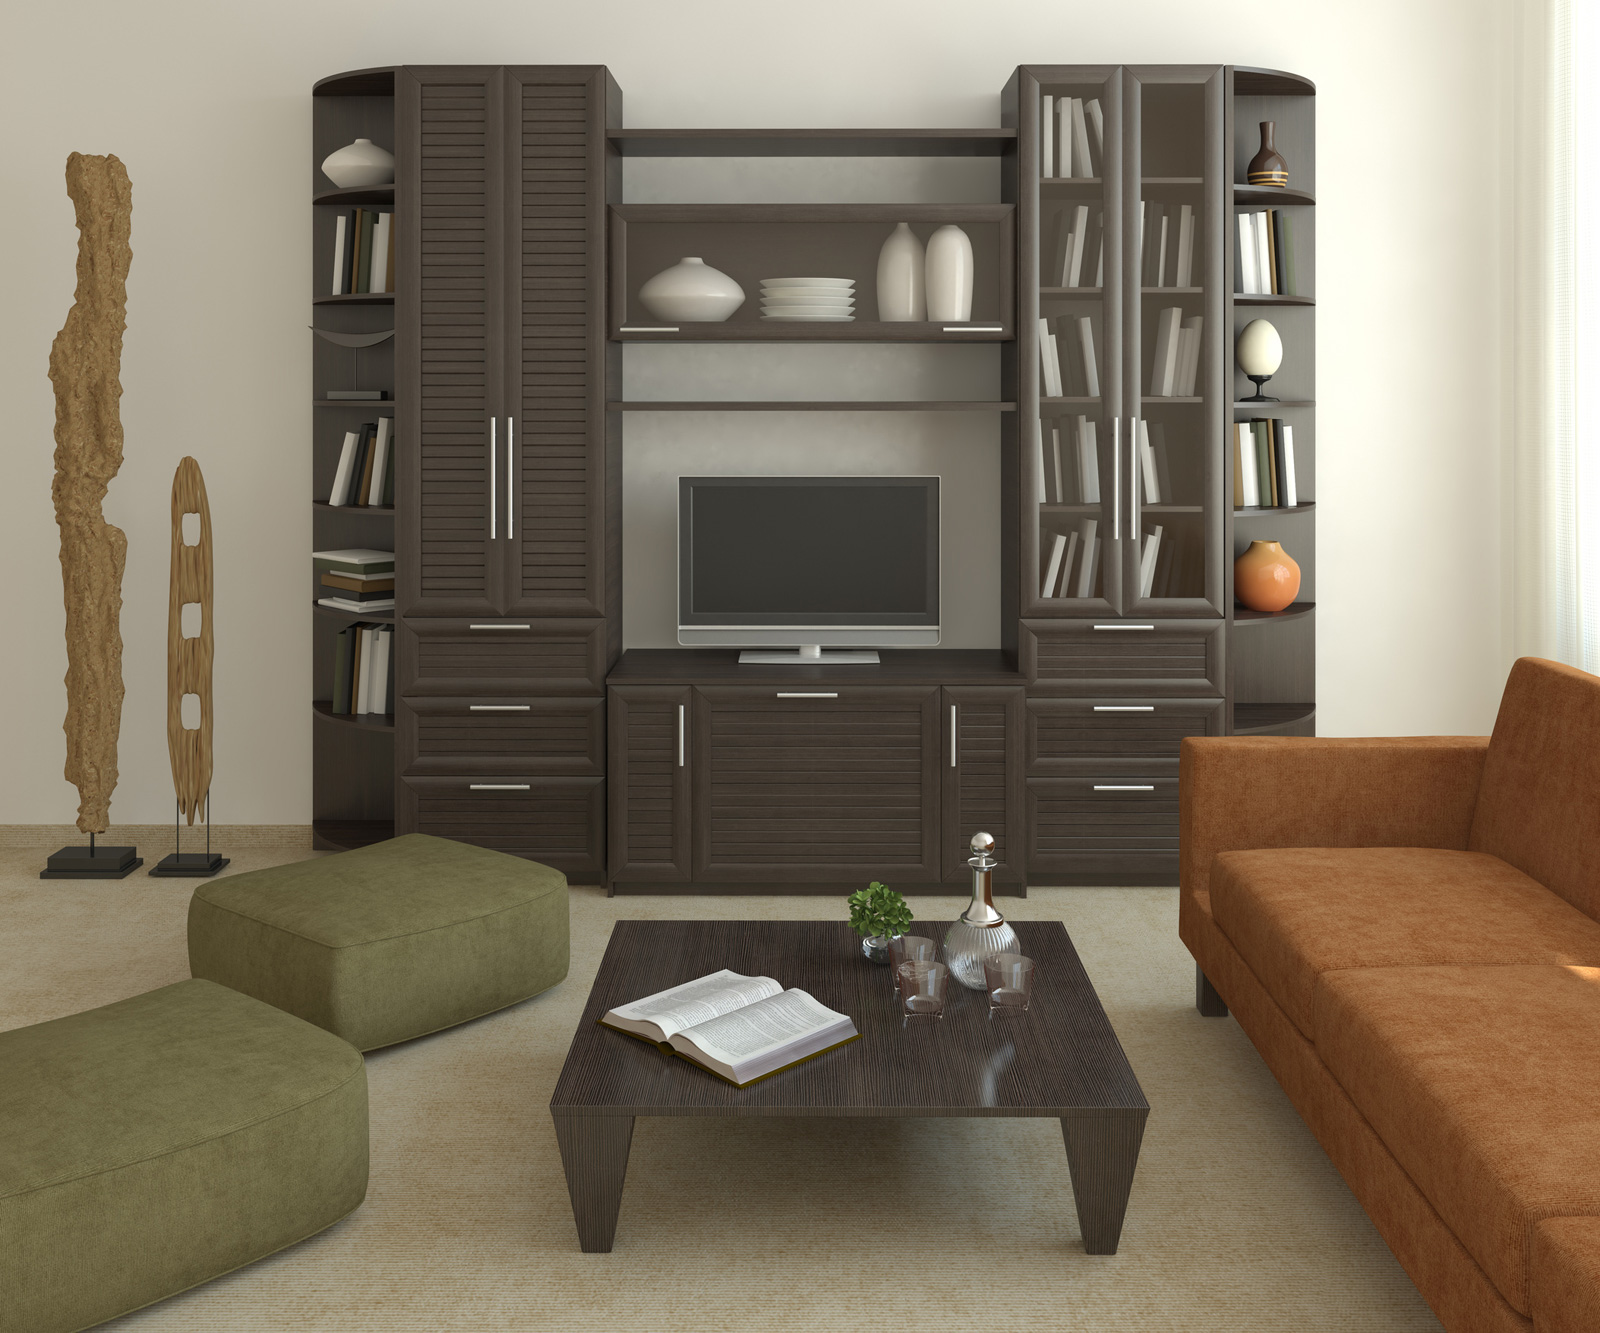 Living Room Bookshelves And Cabinets (View 5 of 10)